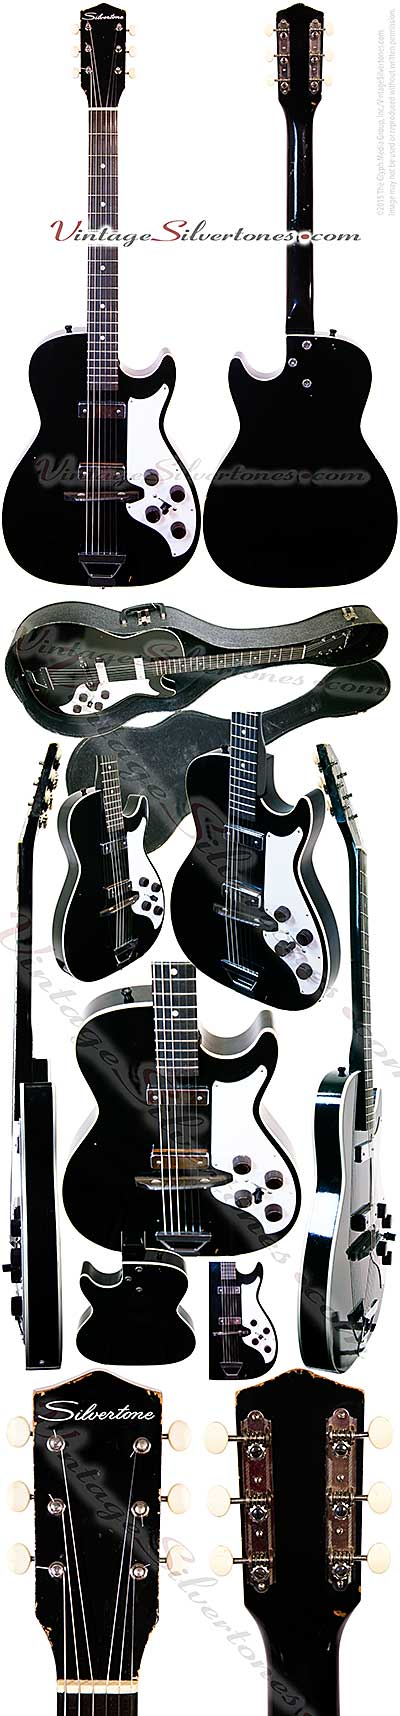 Silvertone 1420L - Harmony Stratotone - 2 pickup, black hollow body electric guitar made in Chicago IL USA circa 1961